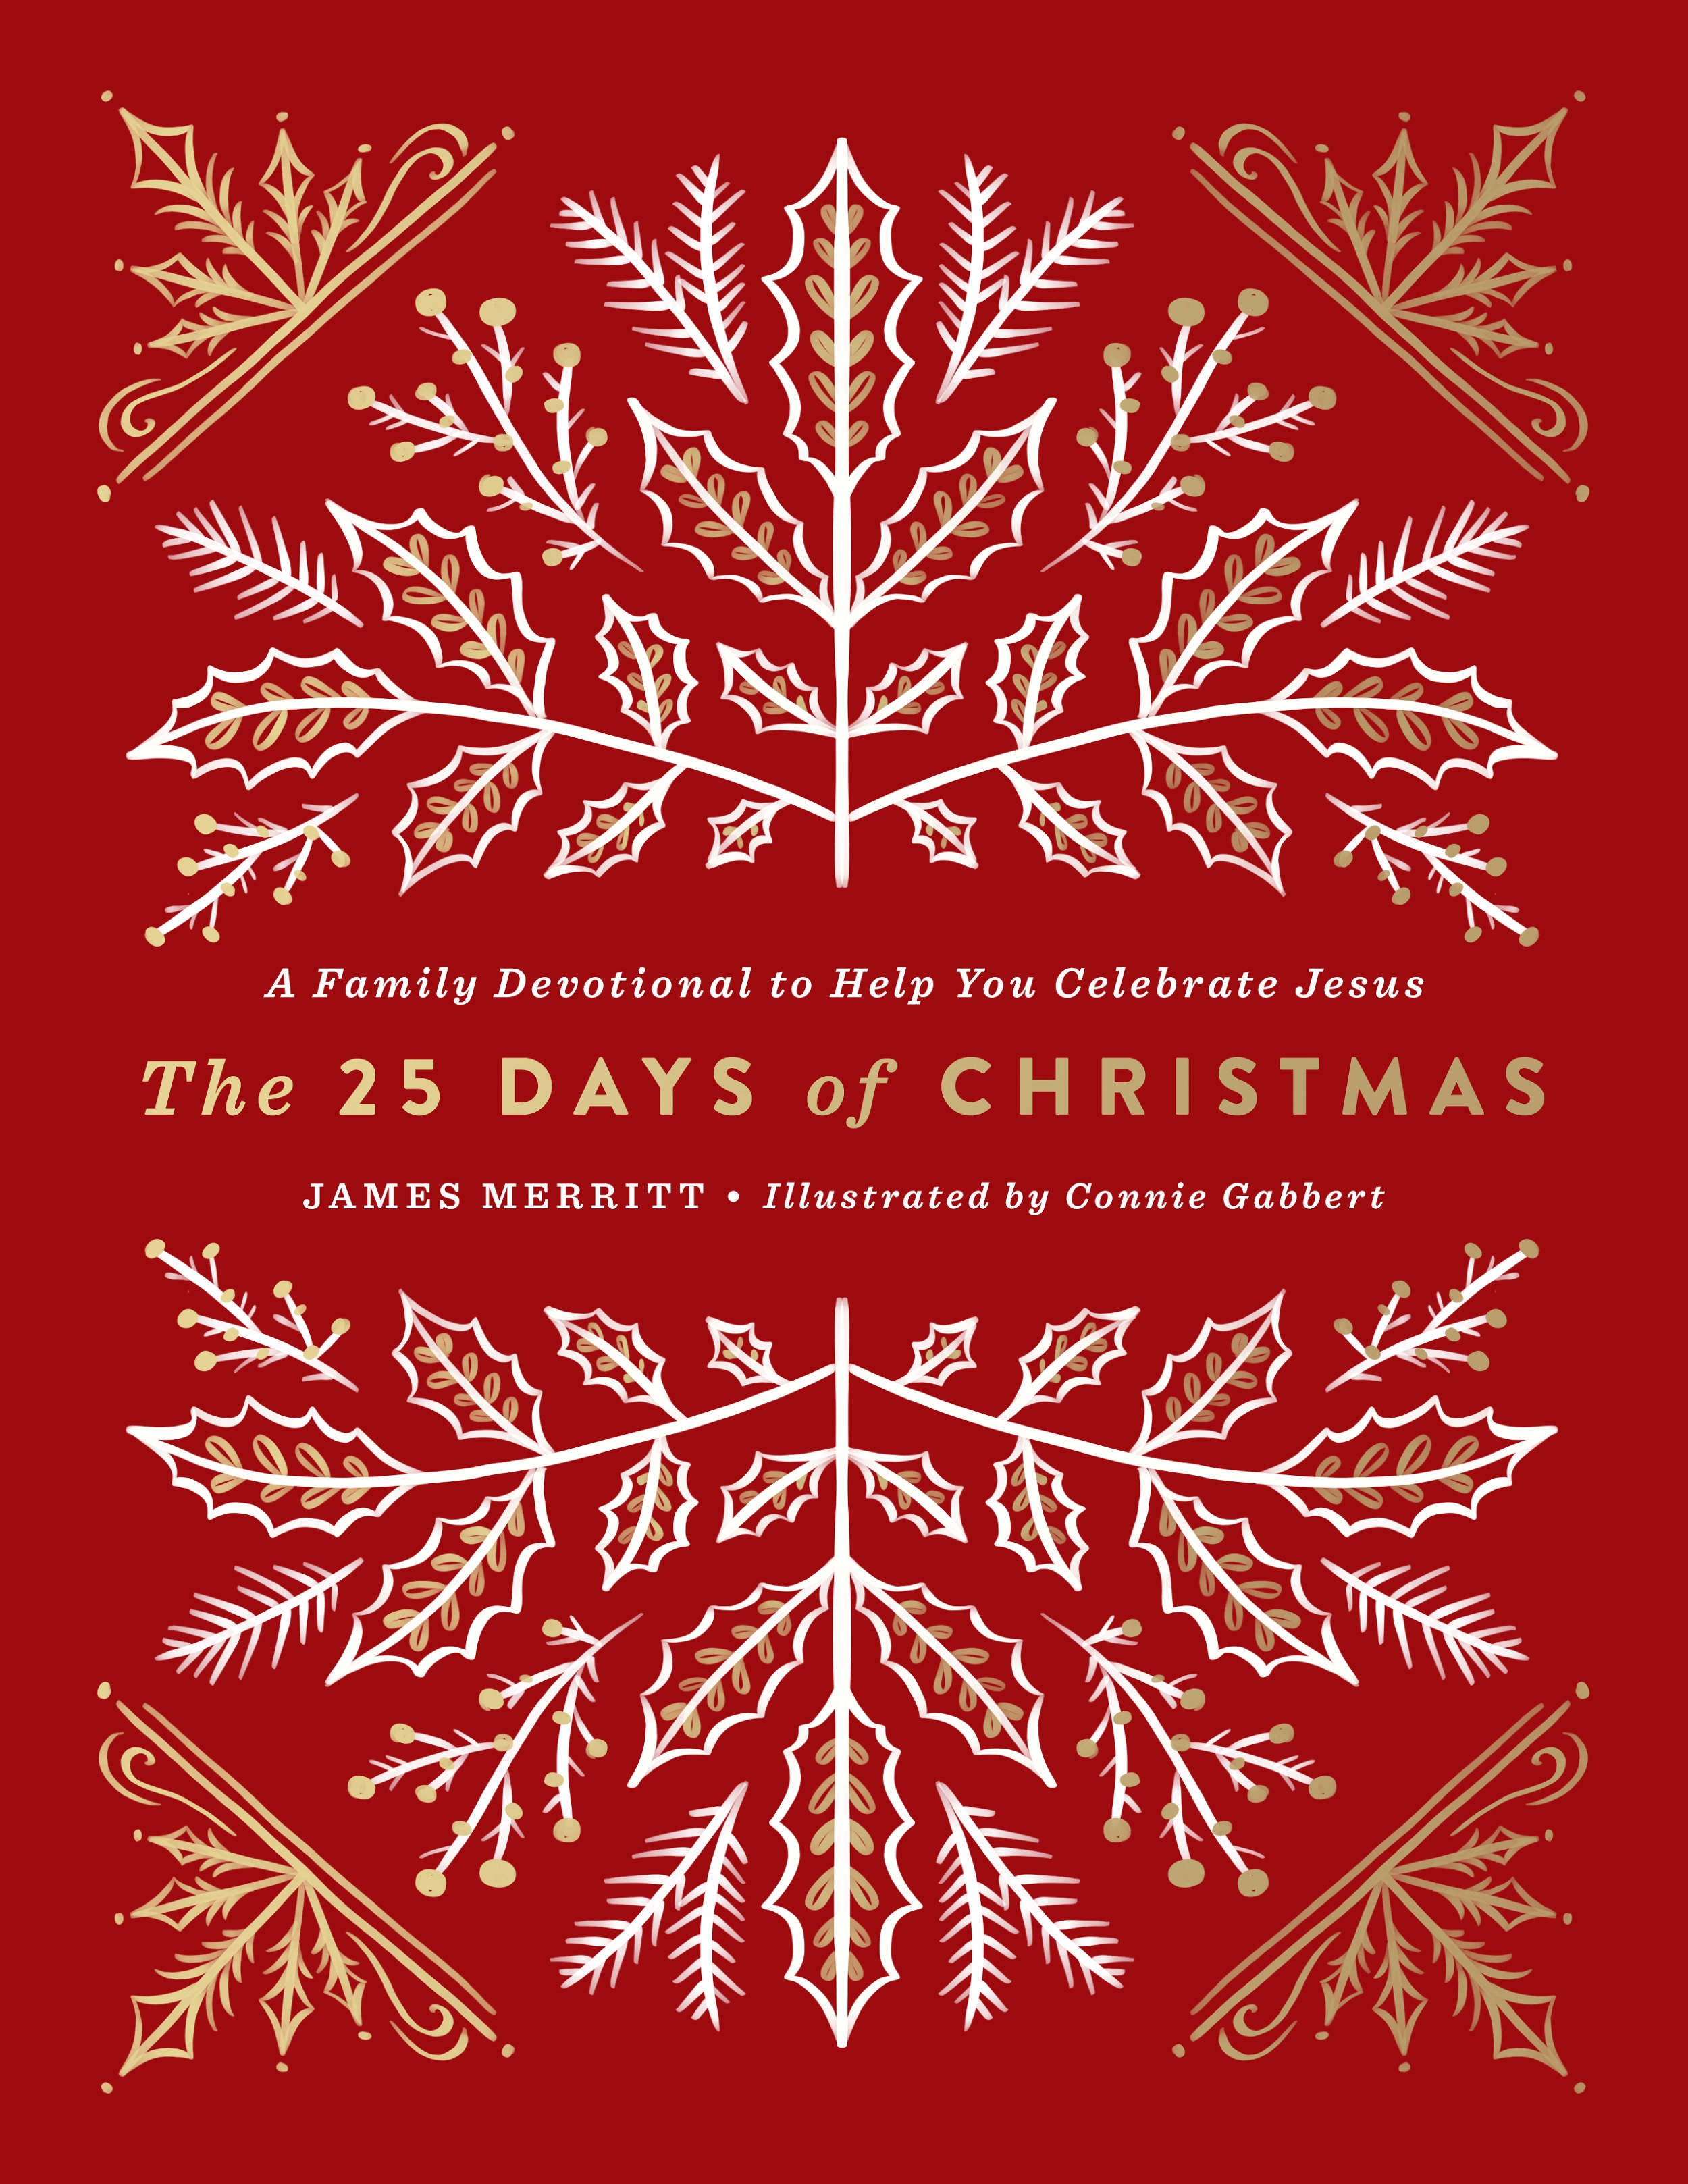 Days To Christmas.25 Days Of Christmas Connie Gabbert Design Illustration